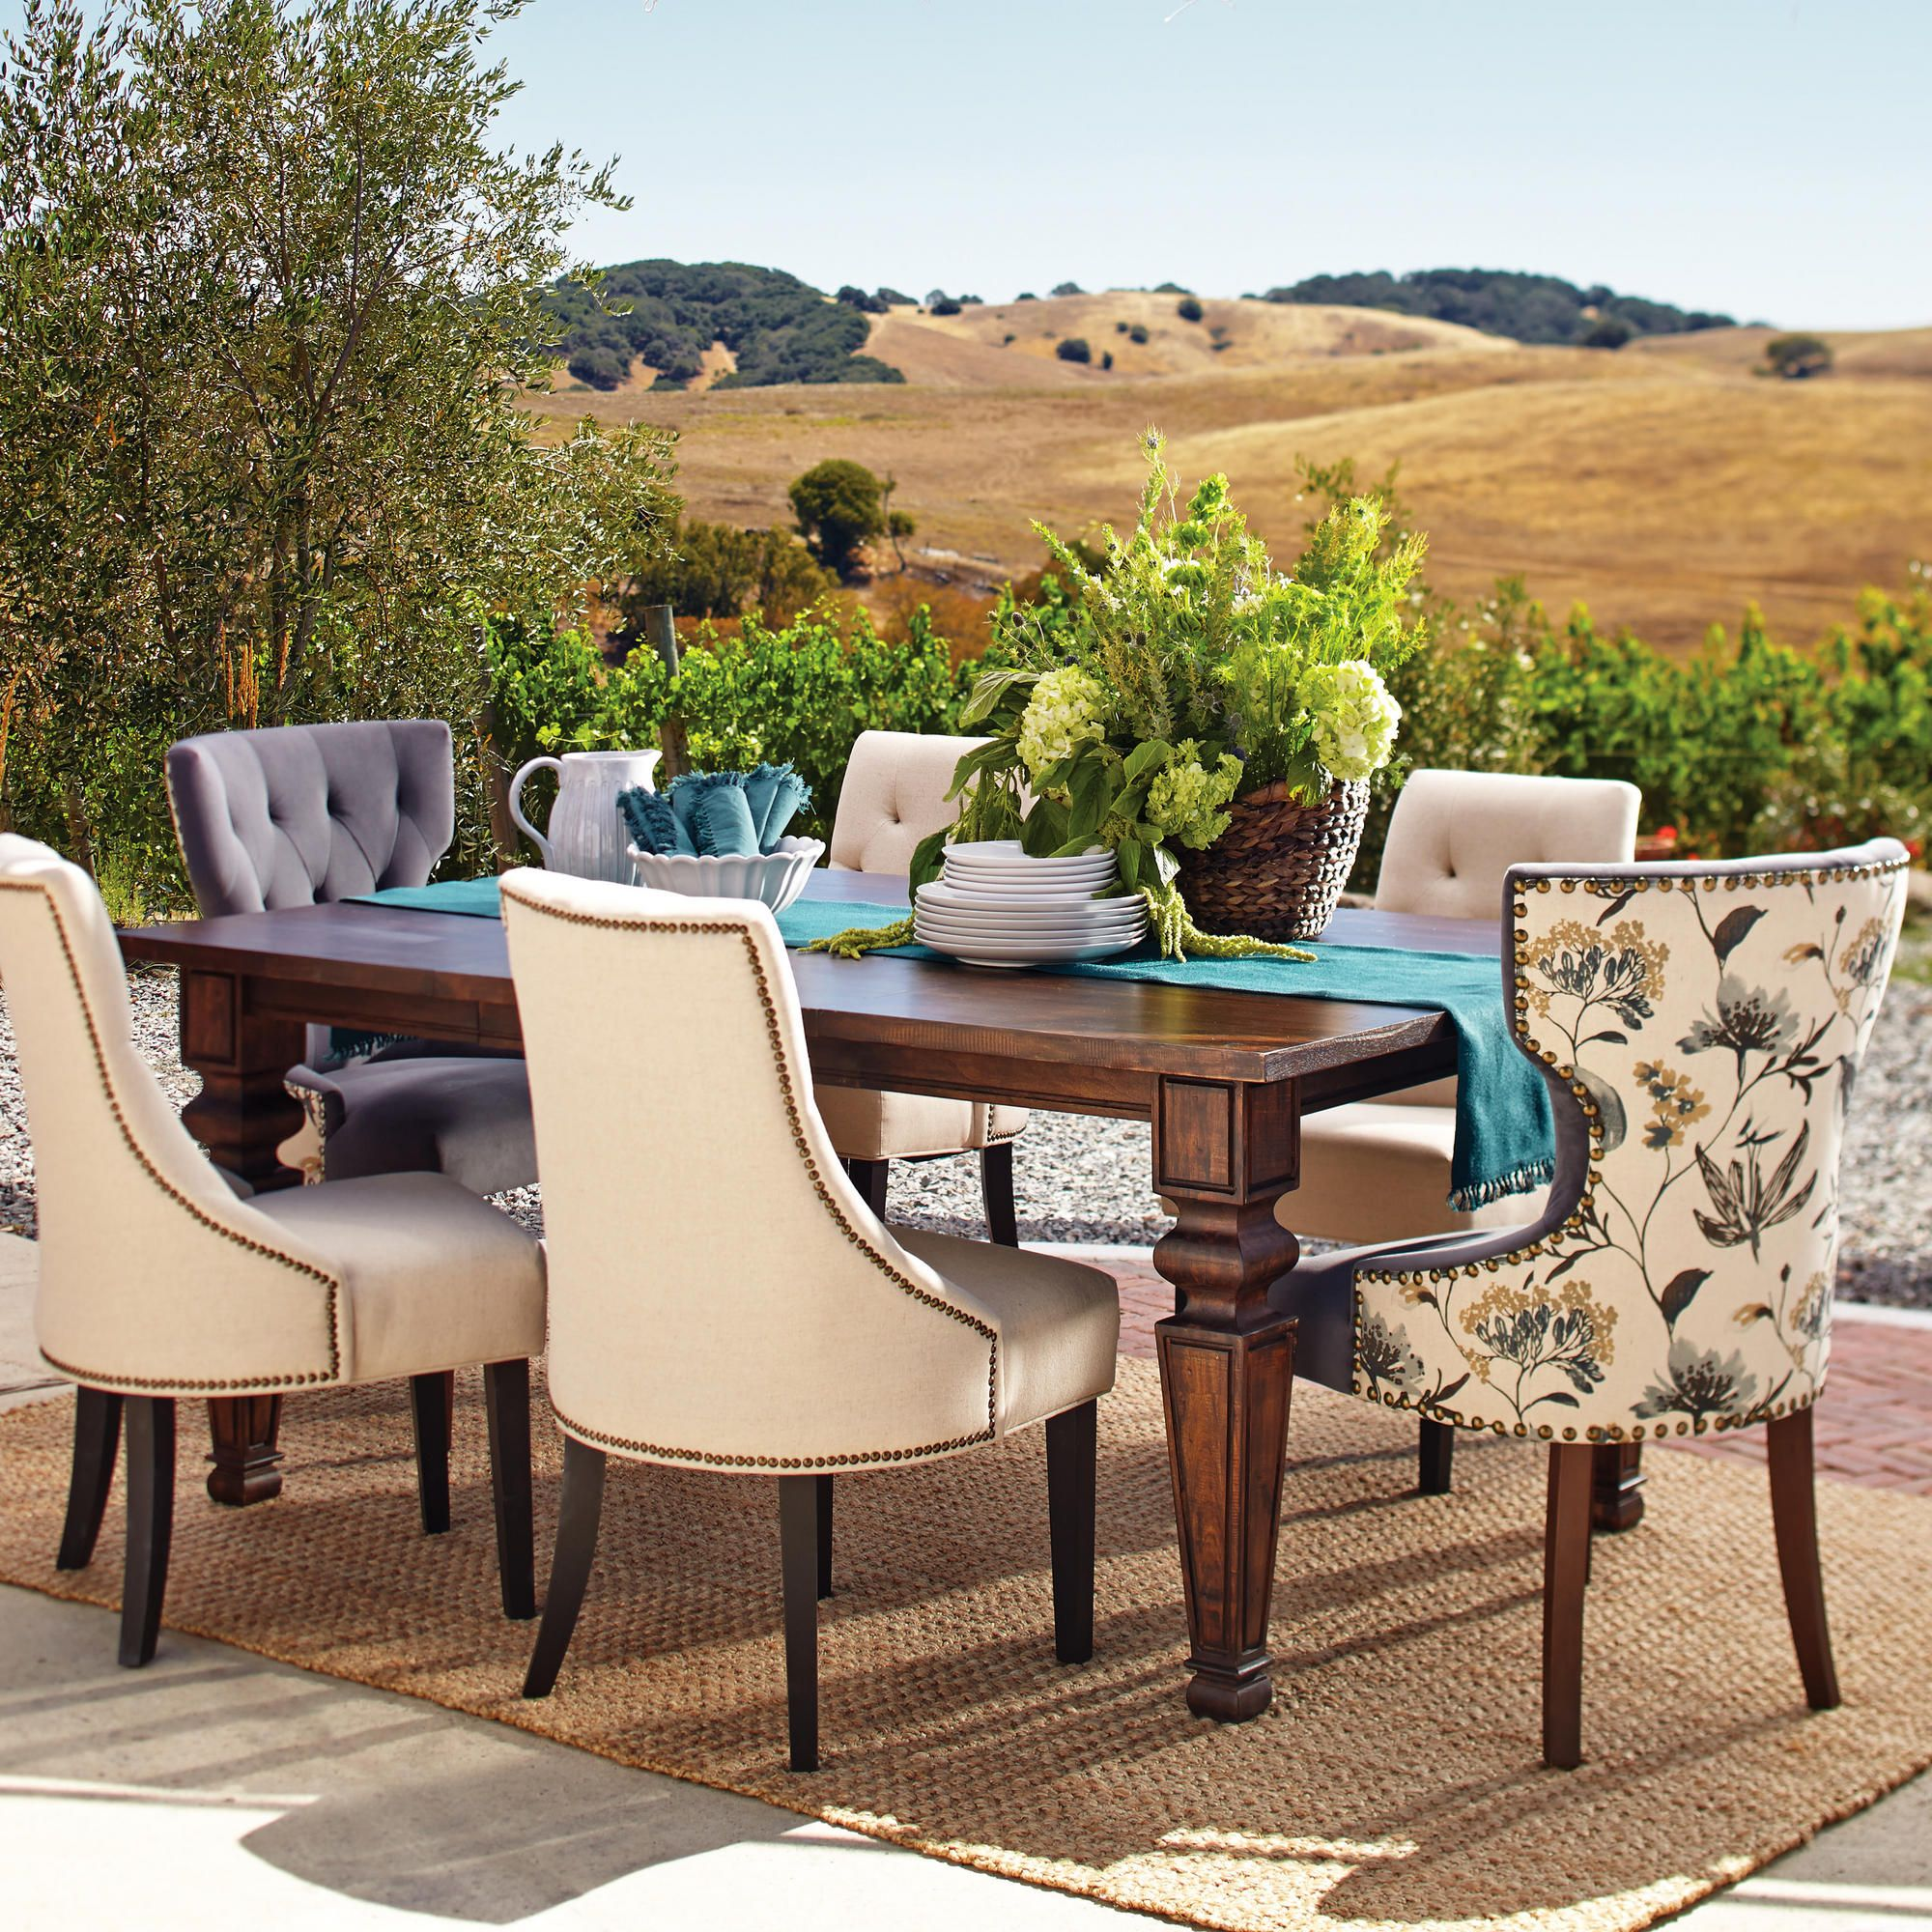 world market maxine chair adec dental chairs bishop double extension dining table for